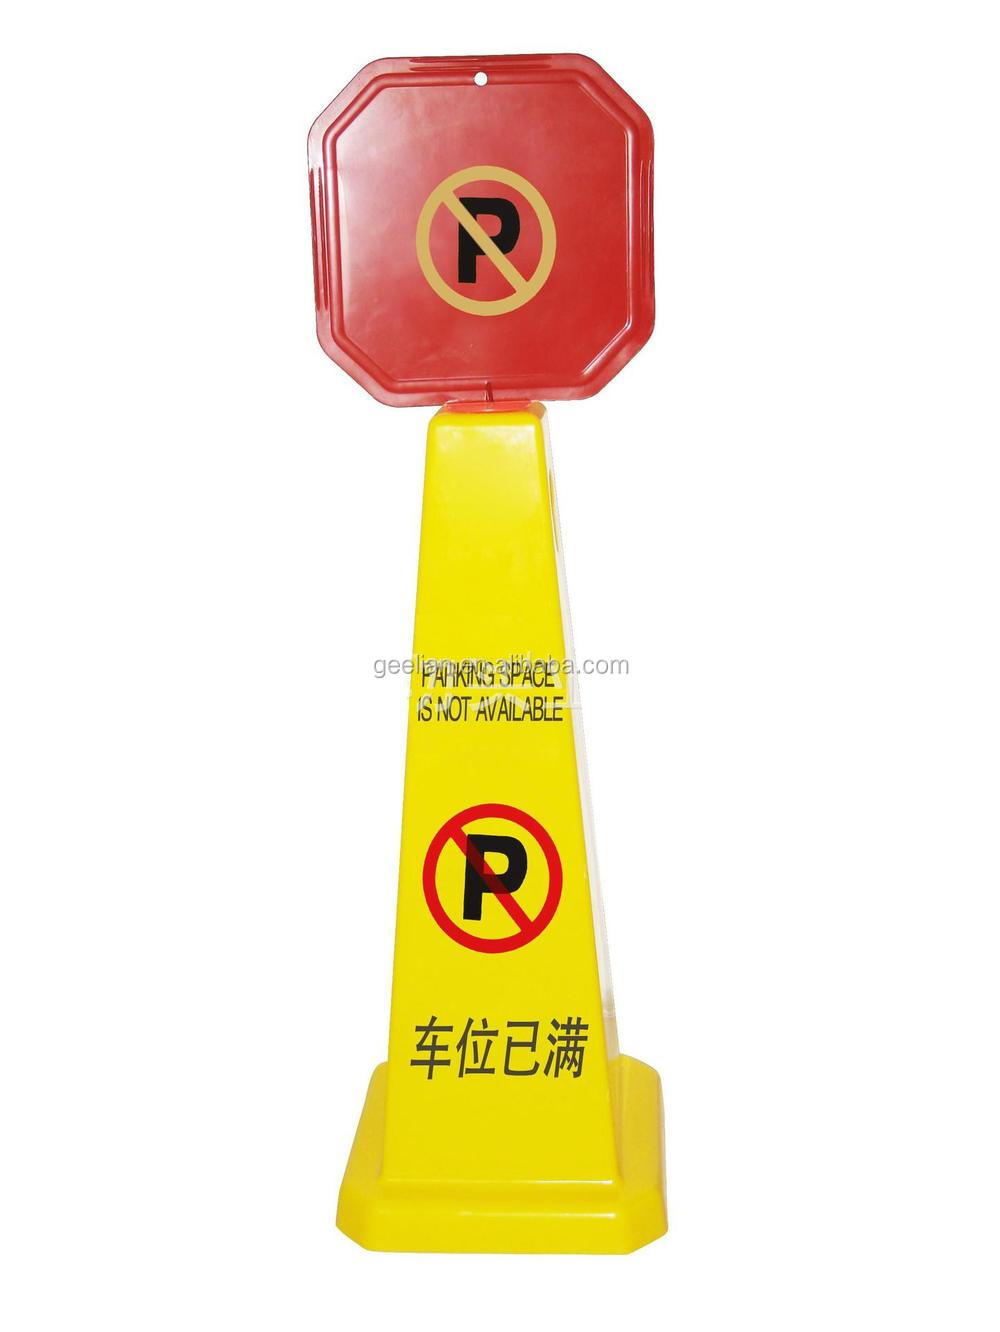 large upright high quality caution signs